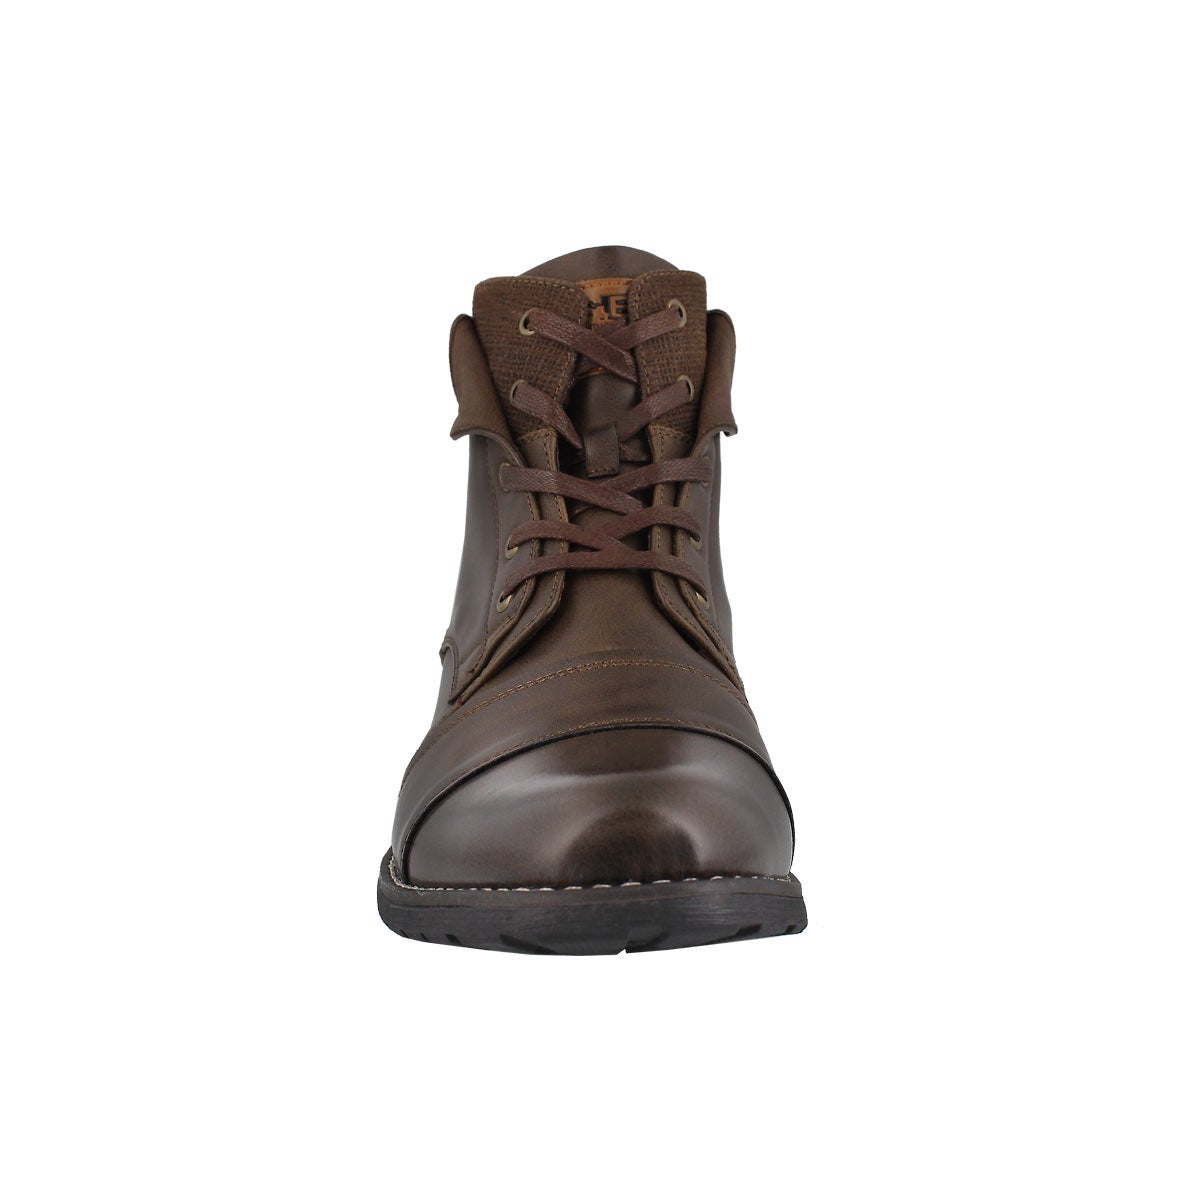 Mns Baker brown lace up ankle boot